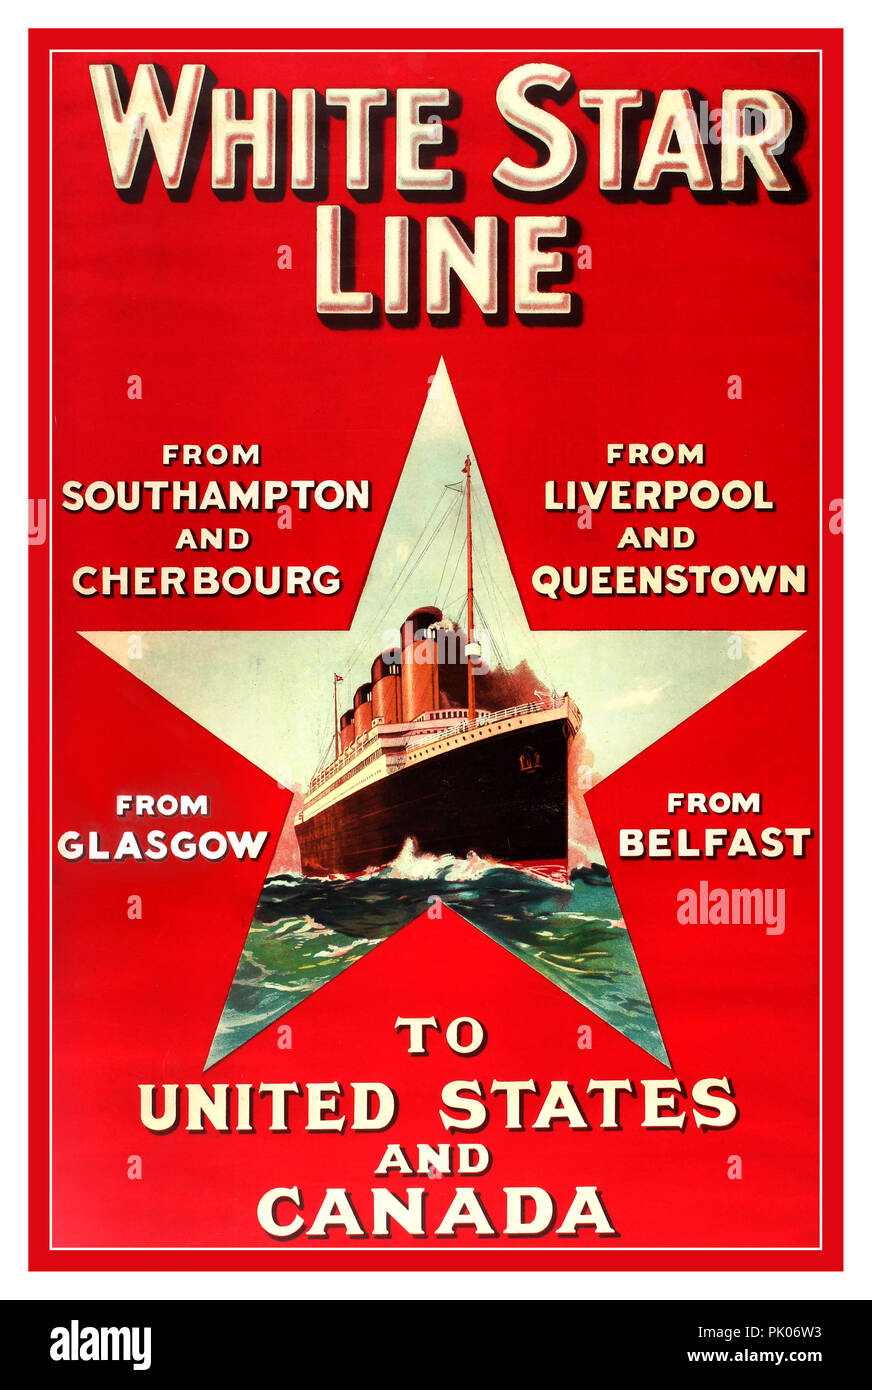 1900's Original vintage travel advertising poster for White Star Line From Southampton and Cherbourg From Liverpool and Queenstown From Glasgow From Belfast To United States and Canada. Illustration of a four funnel TITANIC CLASS OCEAN LINER 1900's Original vintage travel advertising poster for White Star Line inside the shape of a star Printed by the Liverpool Printing & Stationery Company UK 1900's, - Stock Image